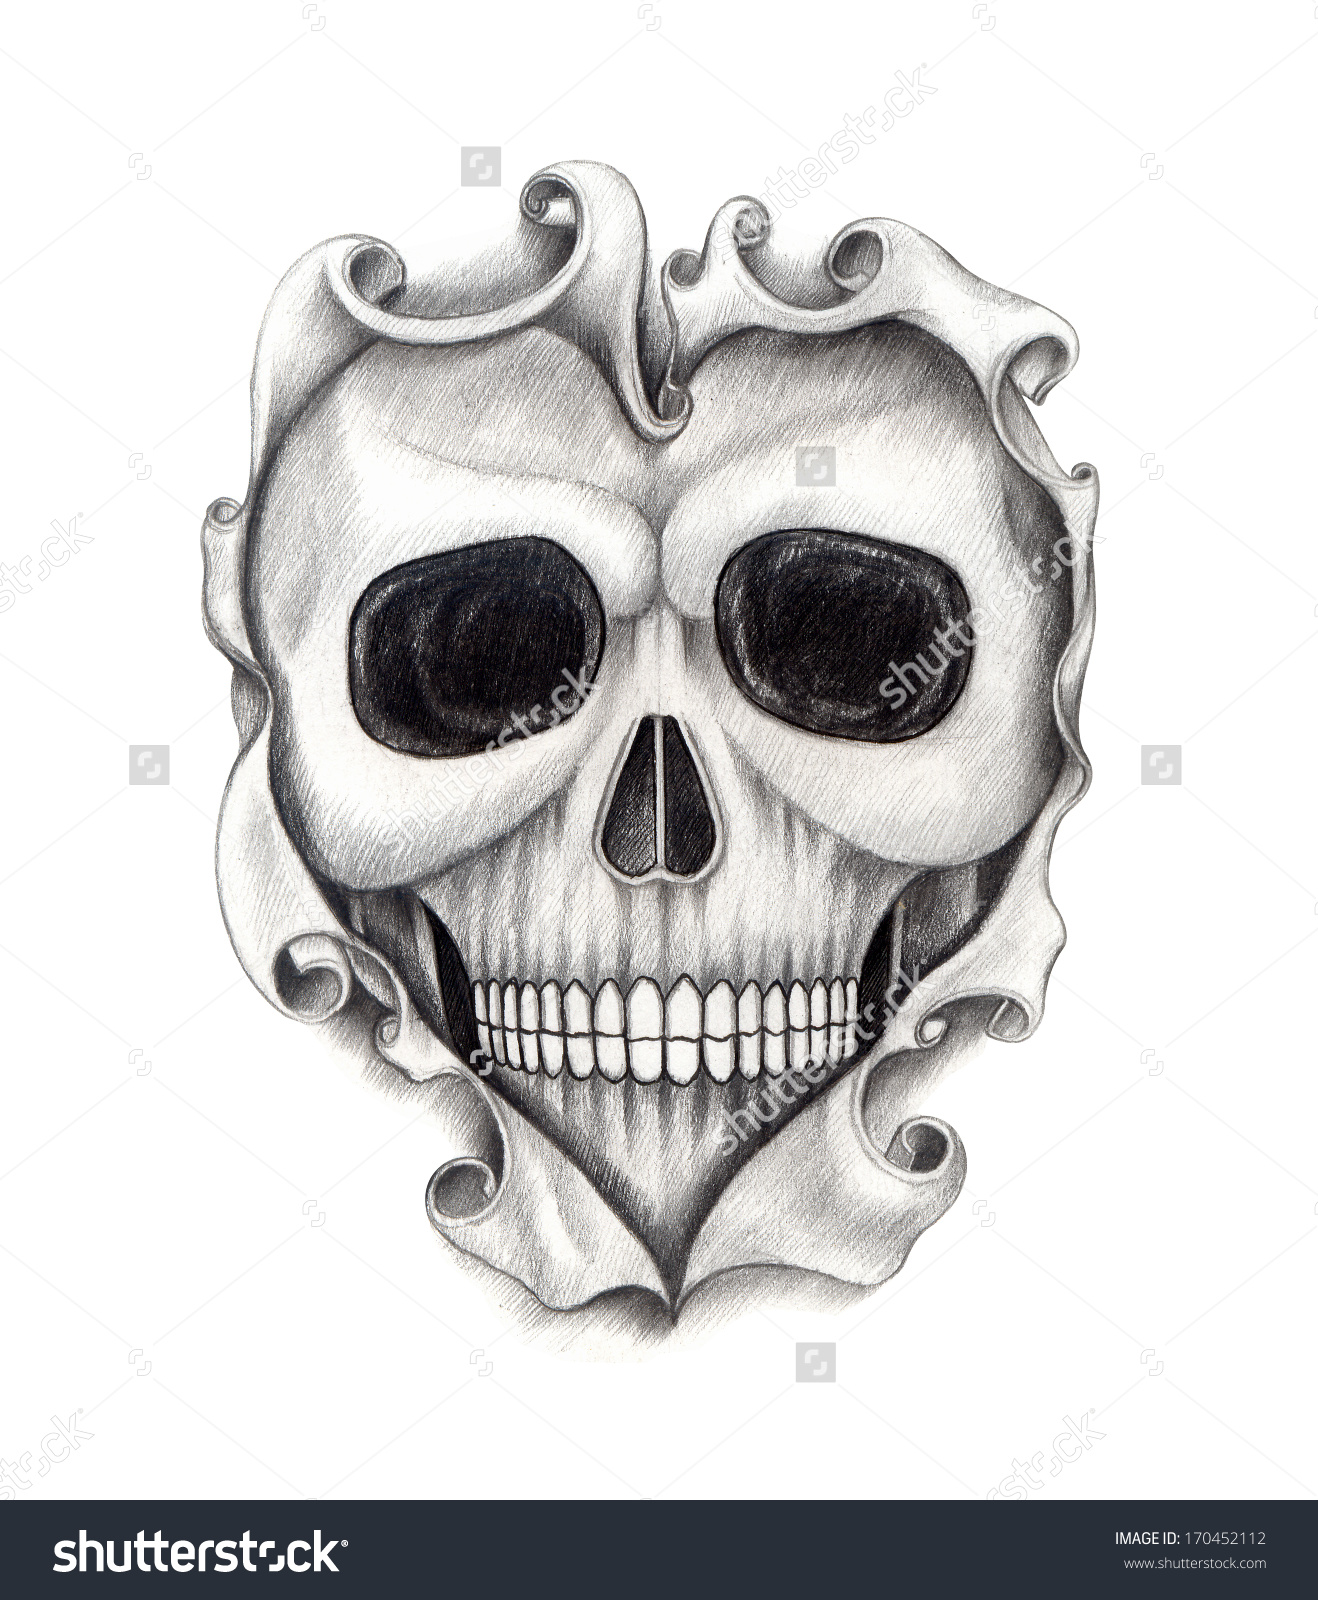 Drawn skull heart Tattoo Drawing Paper Skull